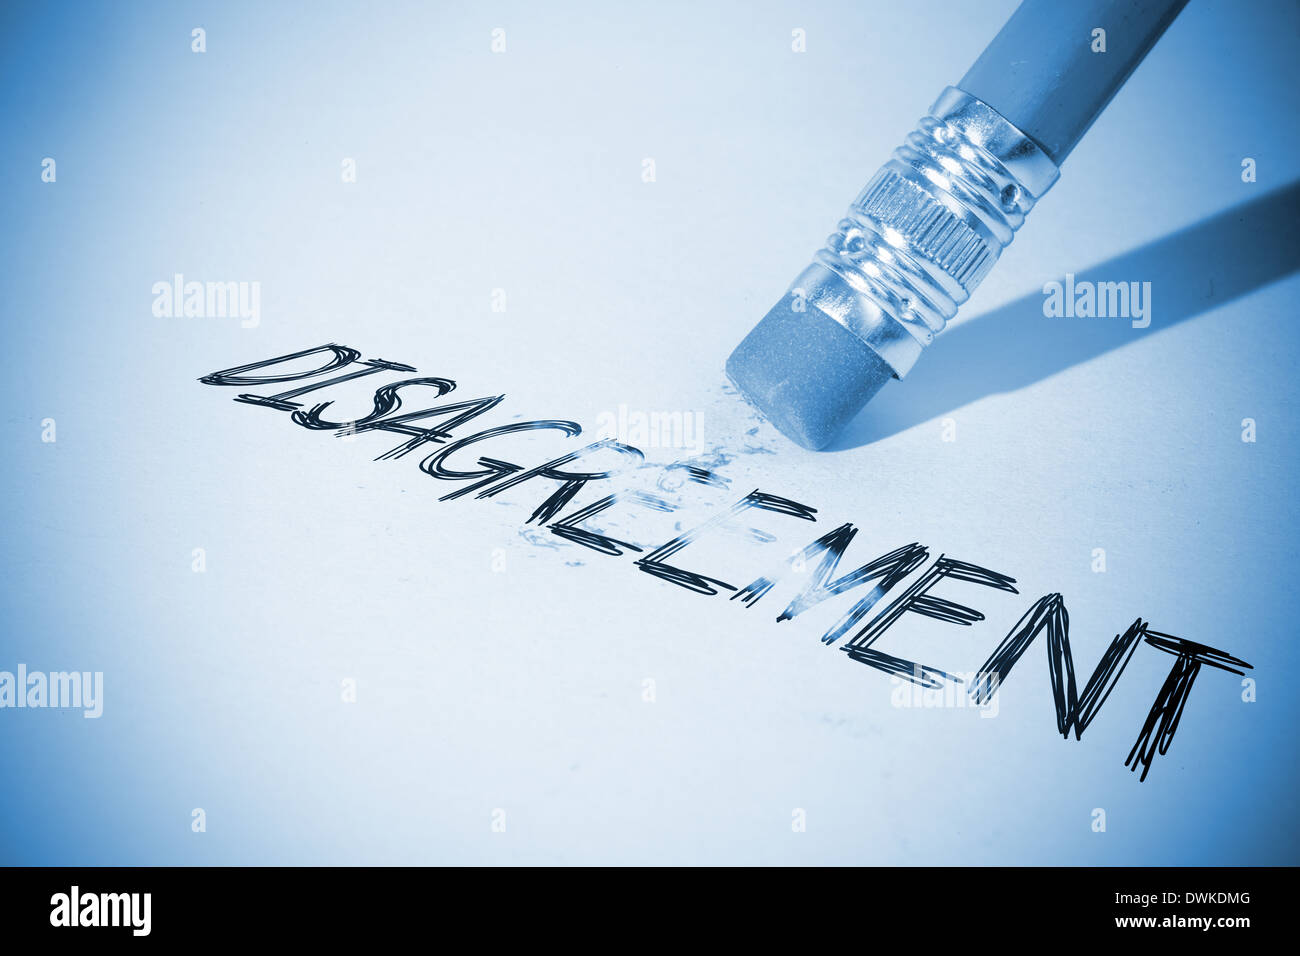 Pencil erasing the word Disagreement - Stock Image